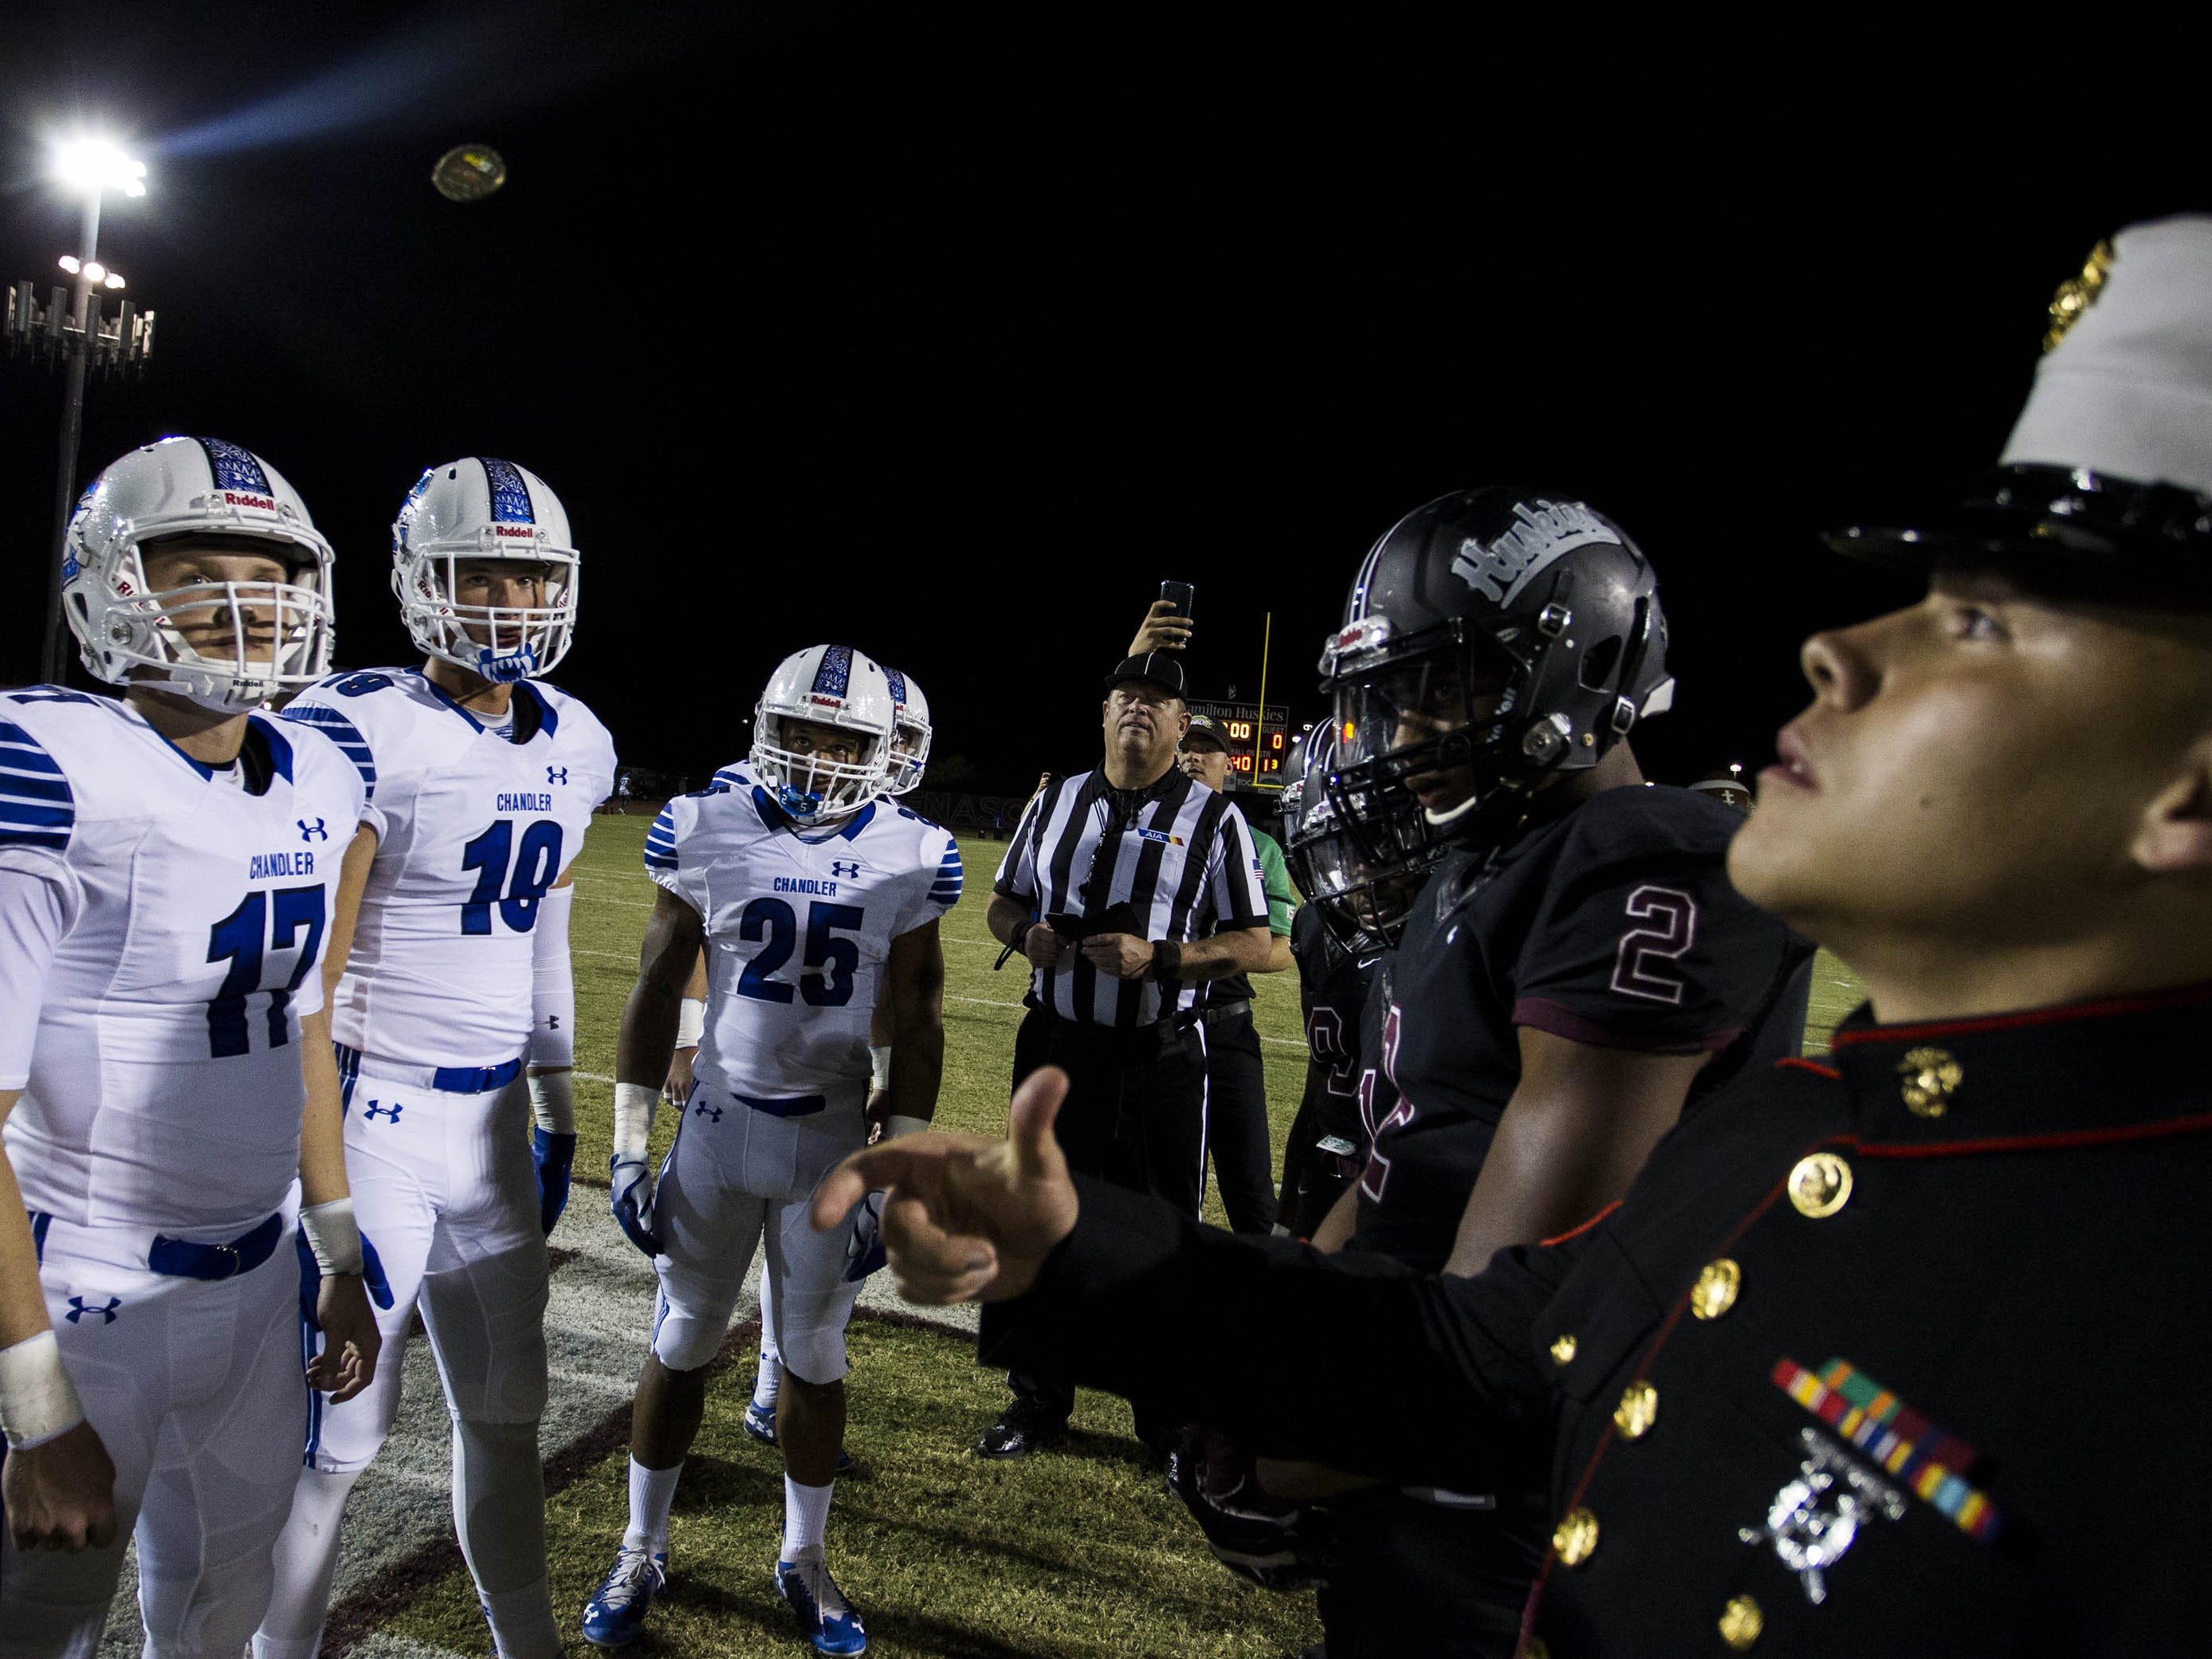 Chandler and Hamilton captains watch the coin toss before their game in Chandler, Friday, Oct. 26, 2018. #azhsfb